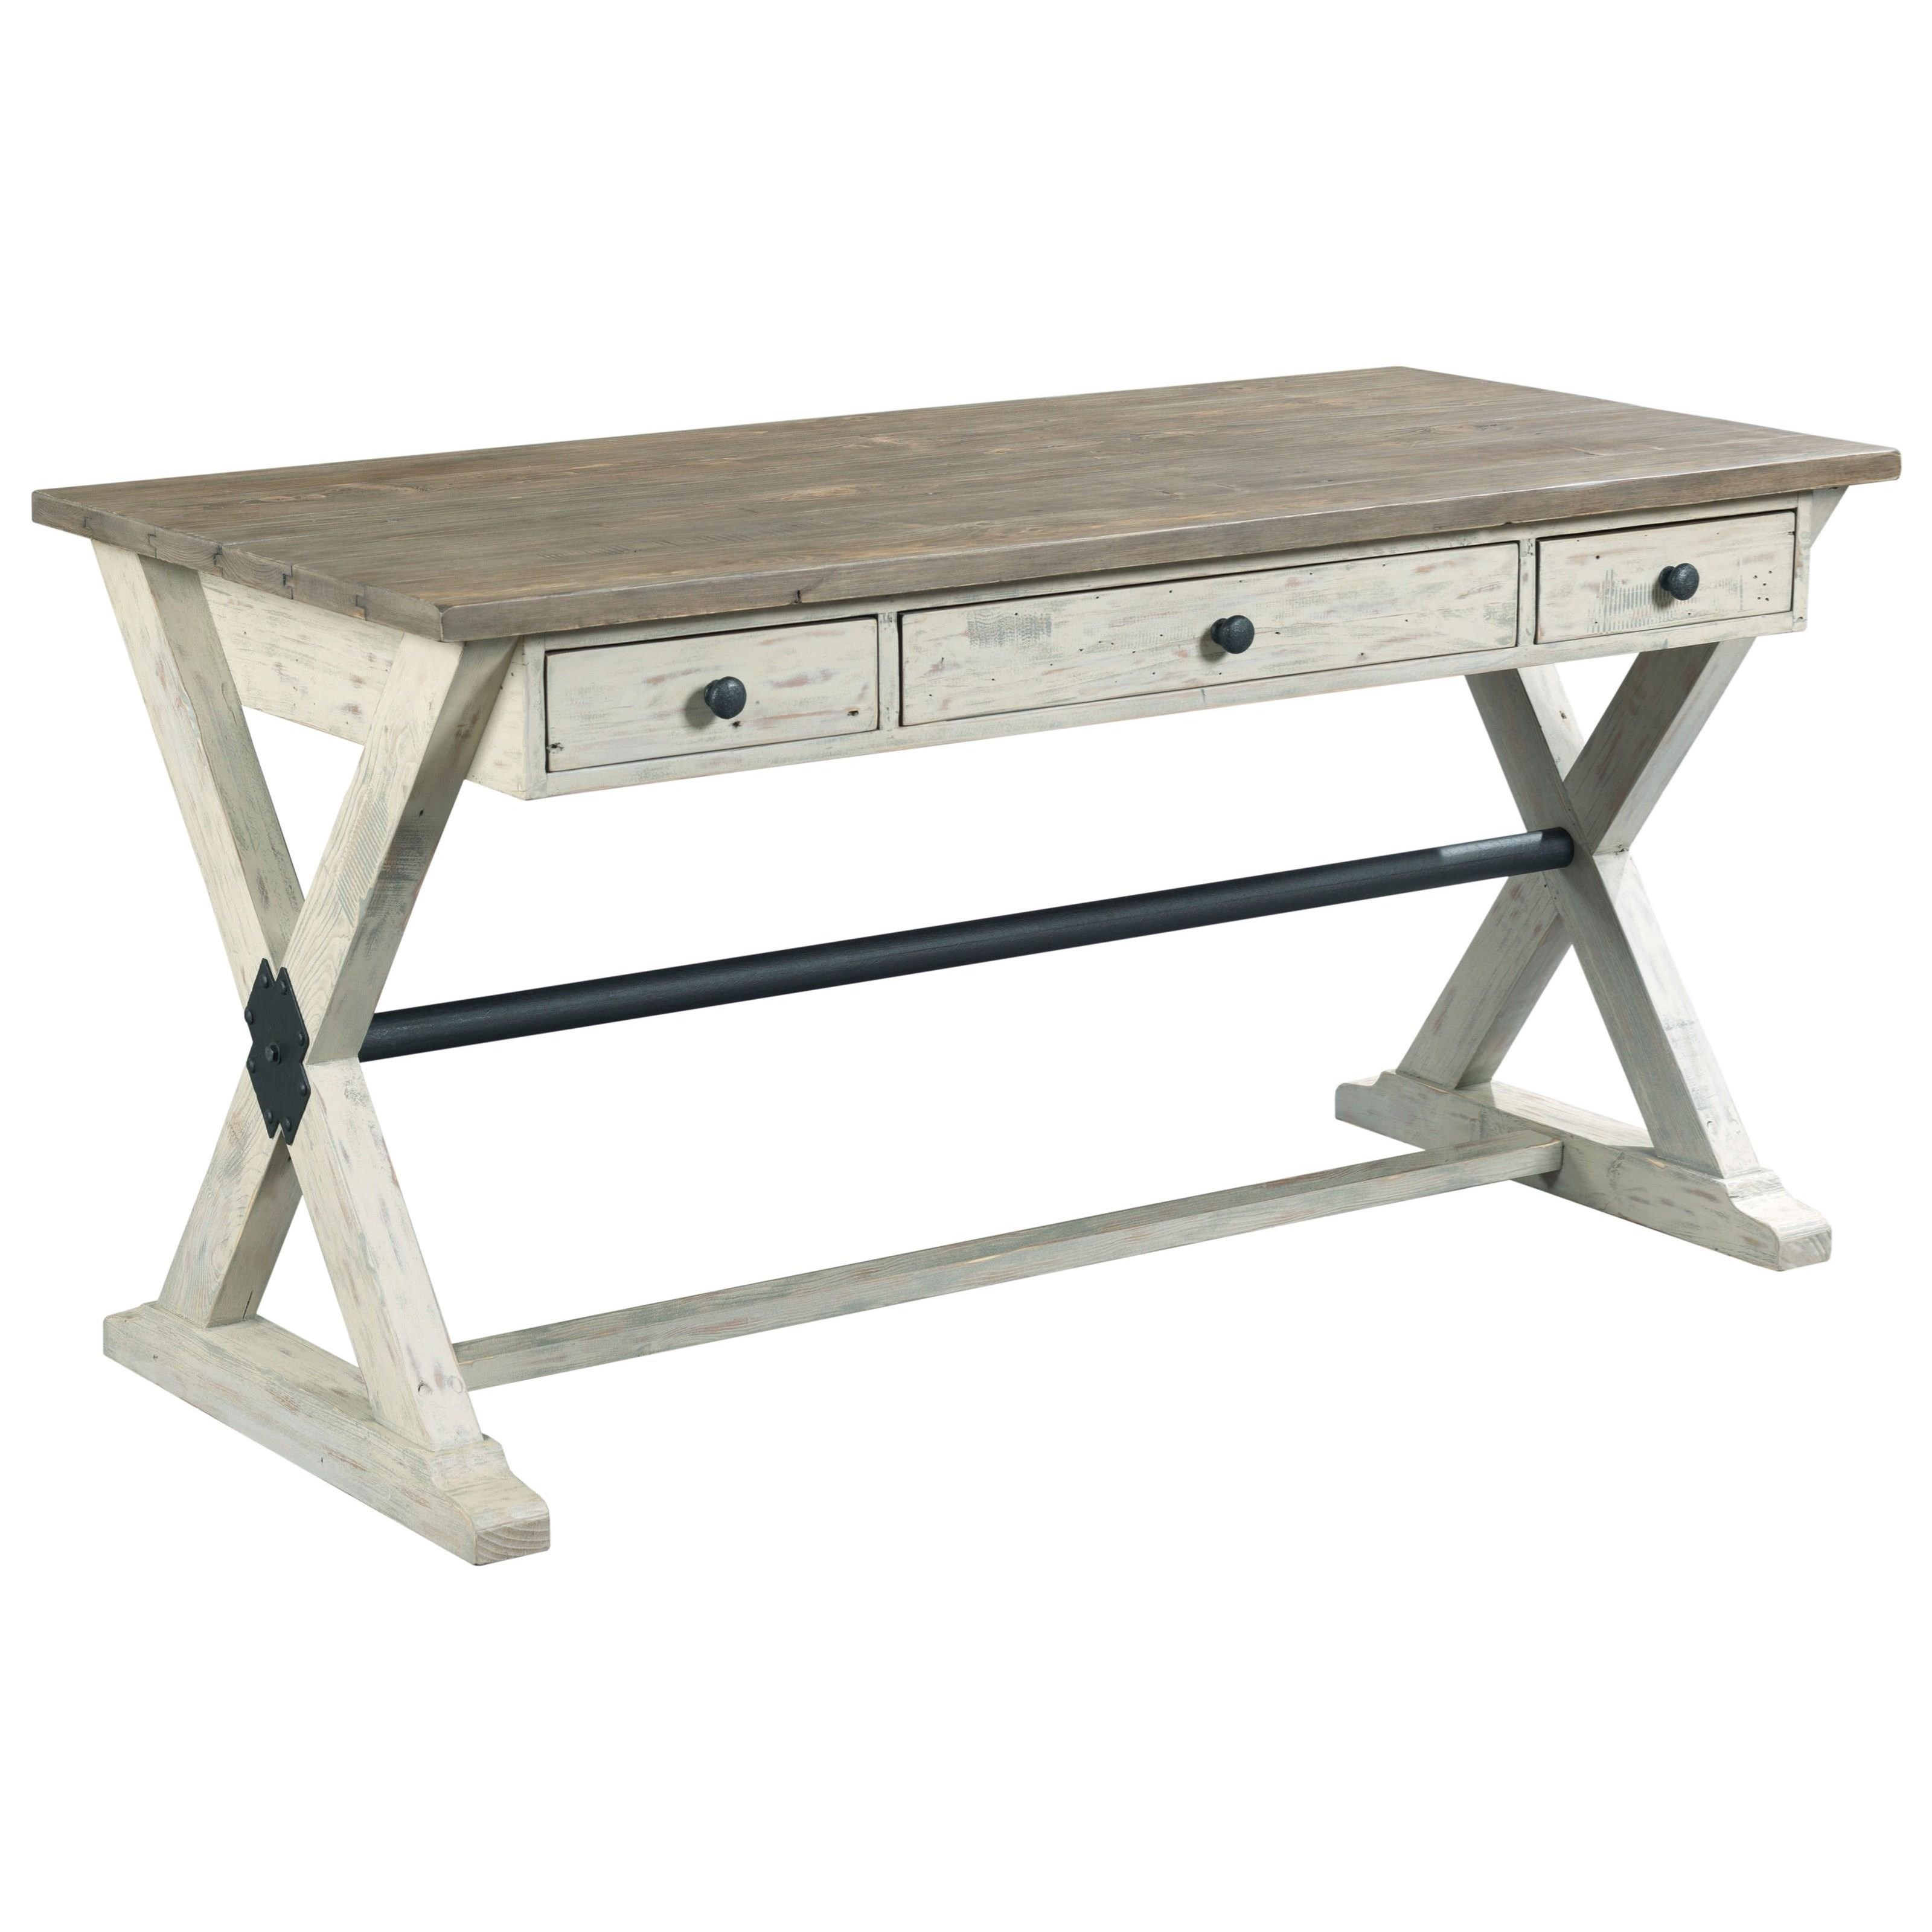 Reclamation Place                                  Trestle Desk by Hammary at HomeWorld Furniture